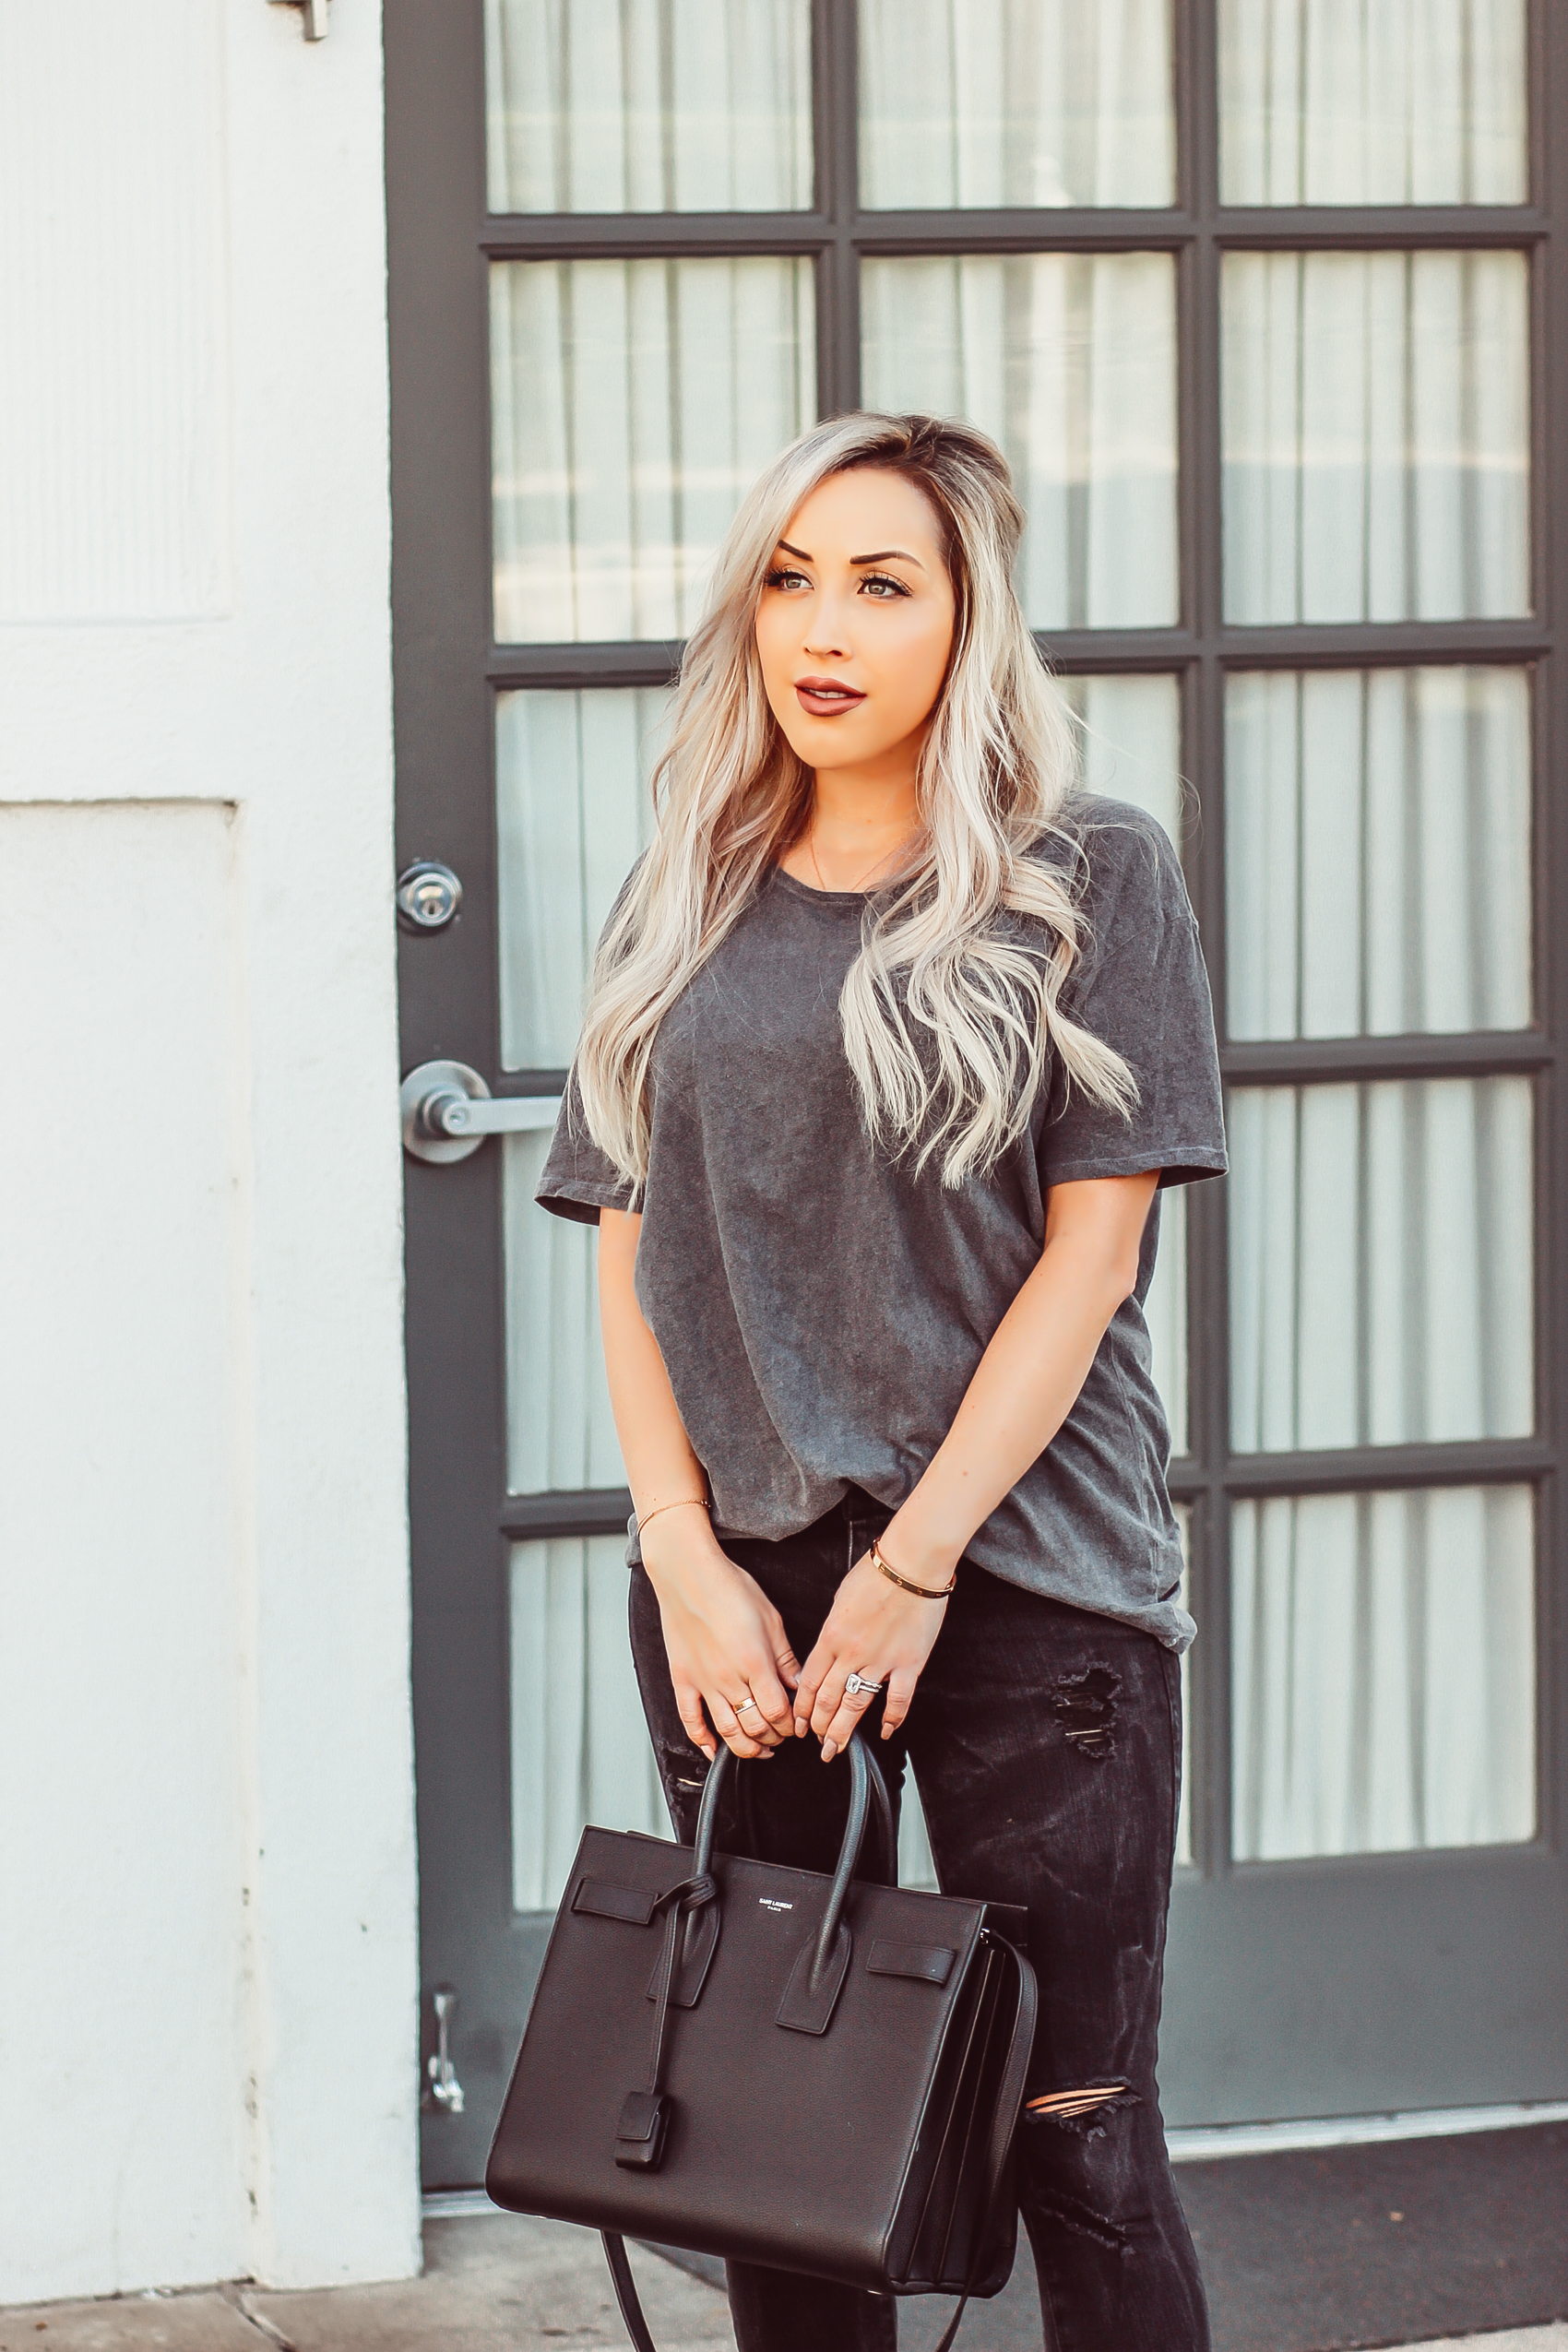 Men's Urban Outfitters Tee for an Girly/Edgy Look   Blondie in the City by Hayley Larue